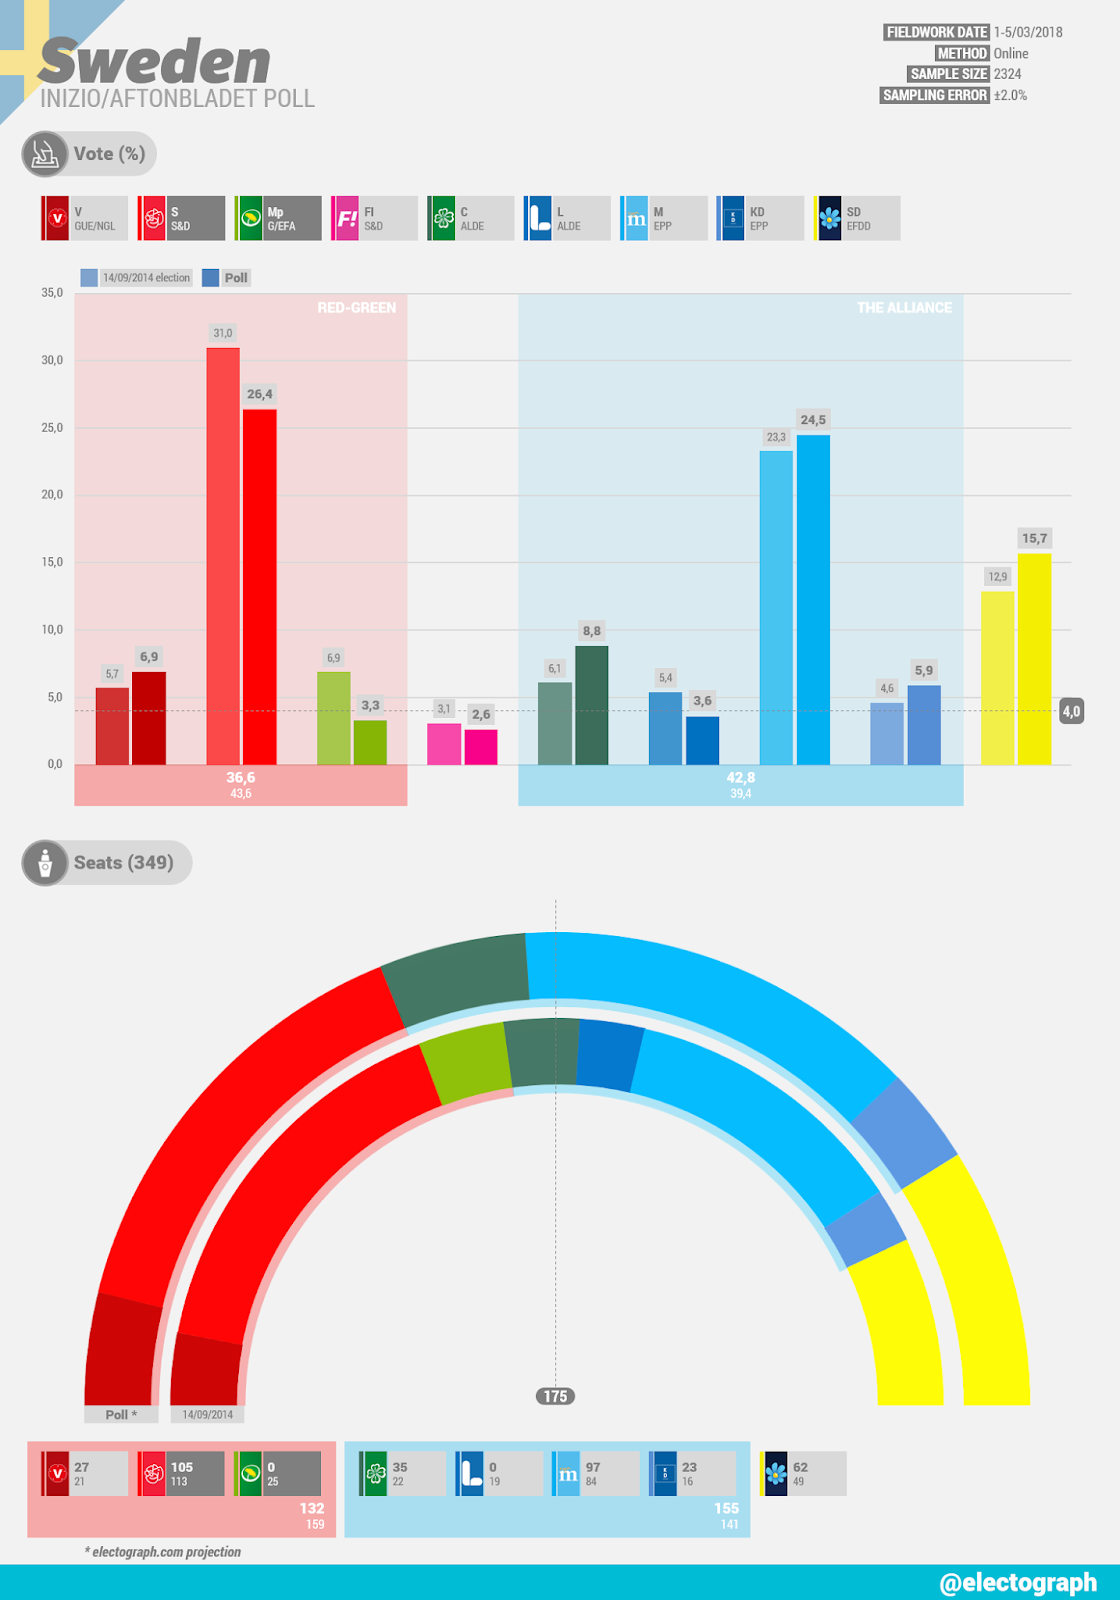 SWEDEN Inizio poll chart for Aftonbladet, March 2018